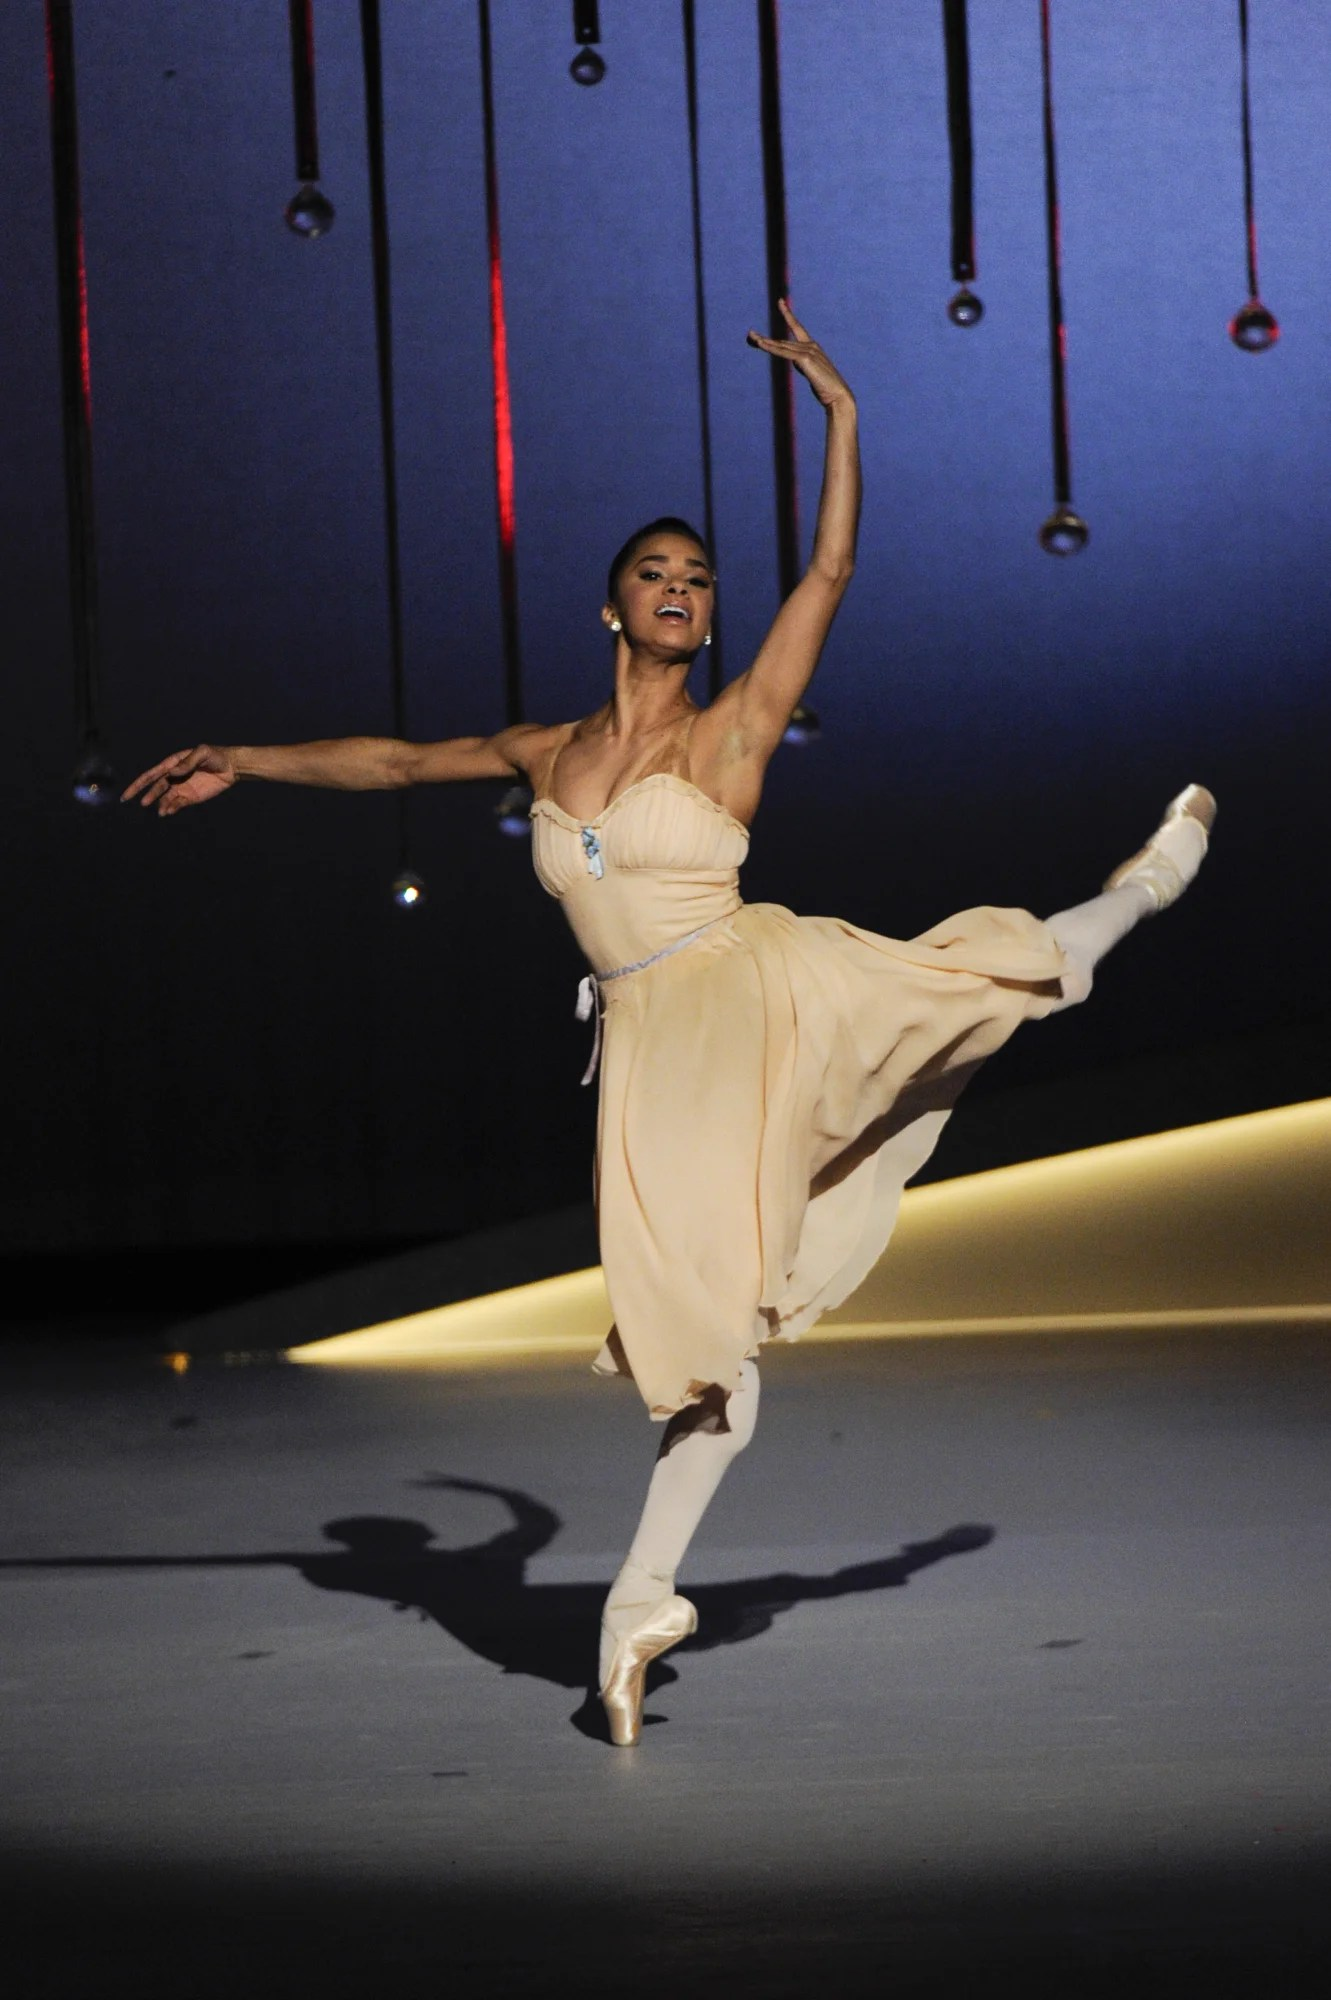 Misty Copeland Becomes First Black Principal Ballerina At